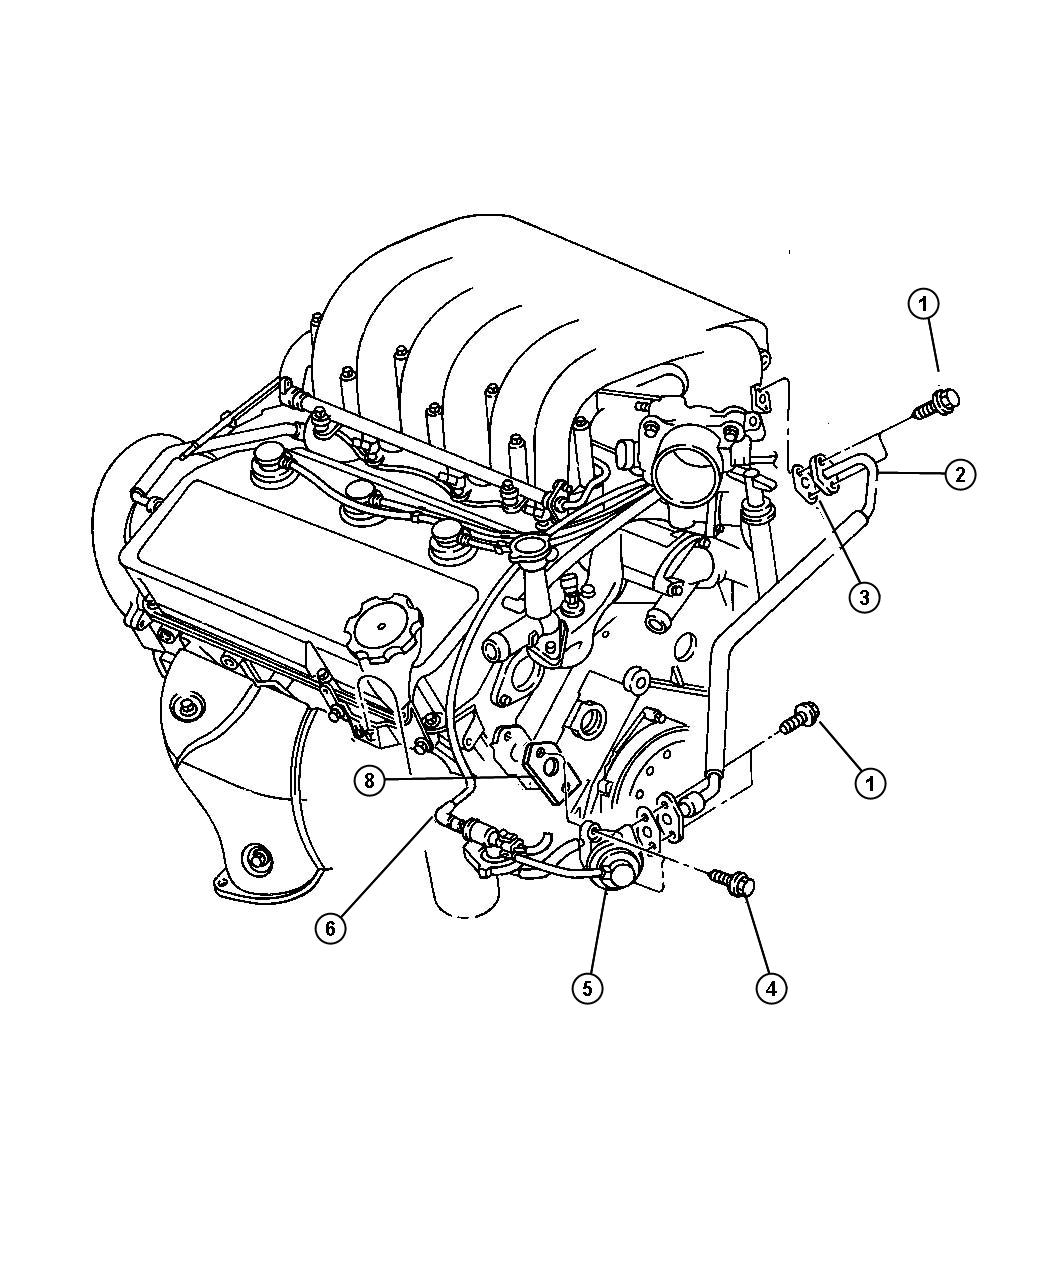 1998 Dodge 2 5l Engine Diagram Stratus. Dodge. Auto Wiring